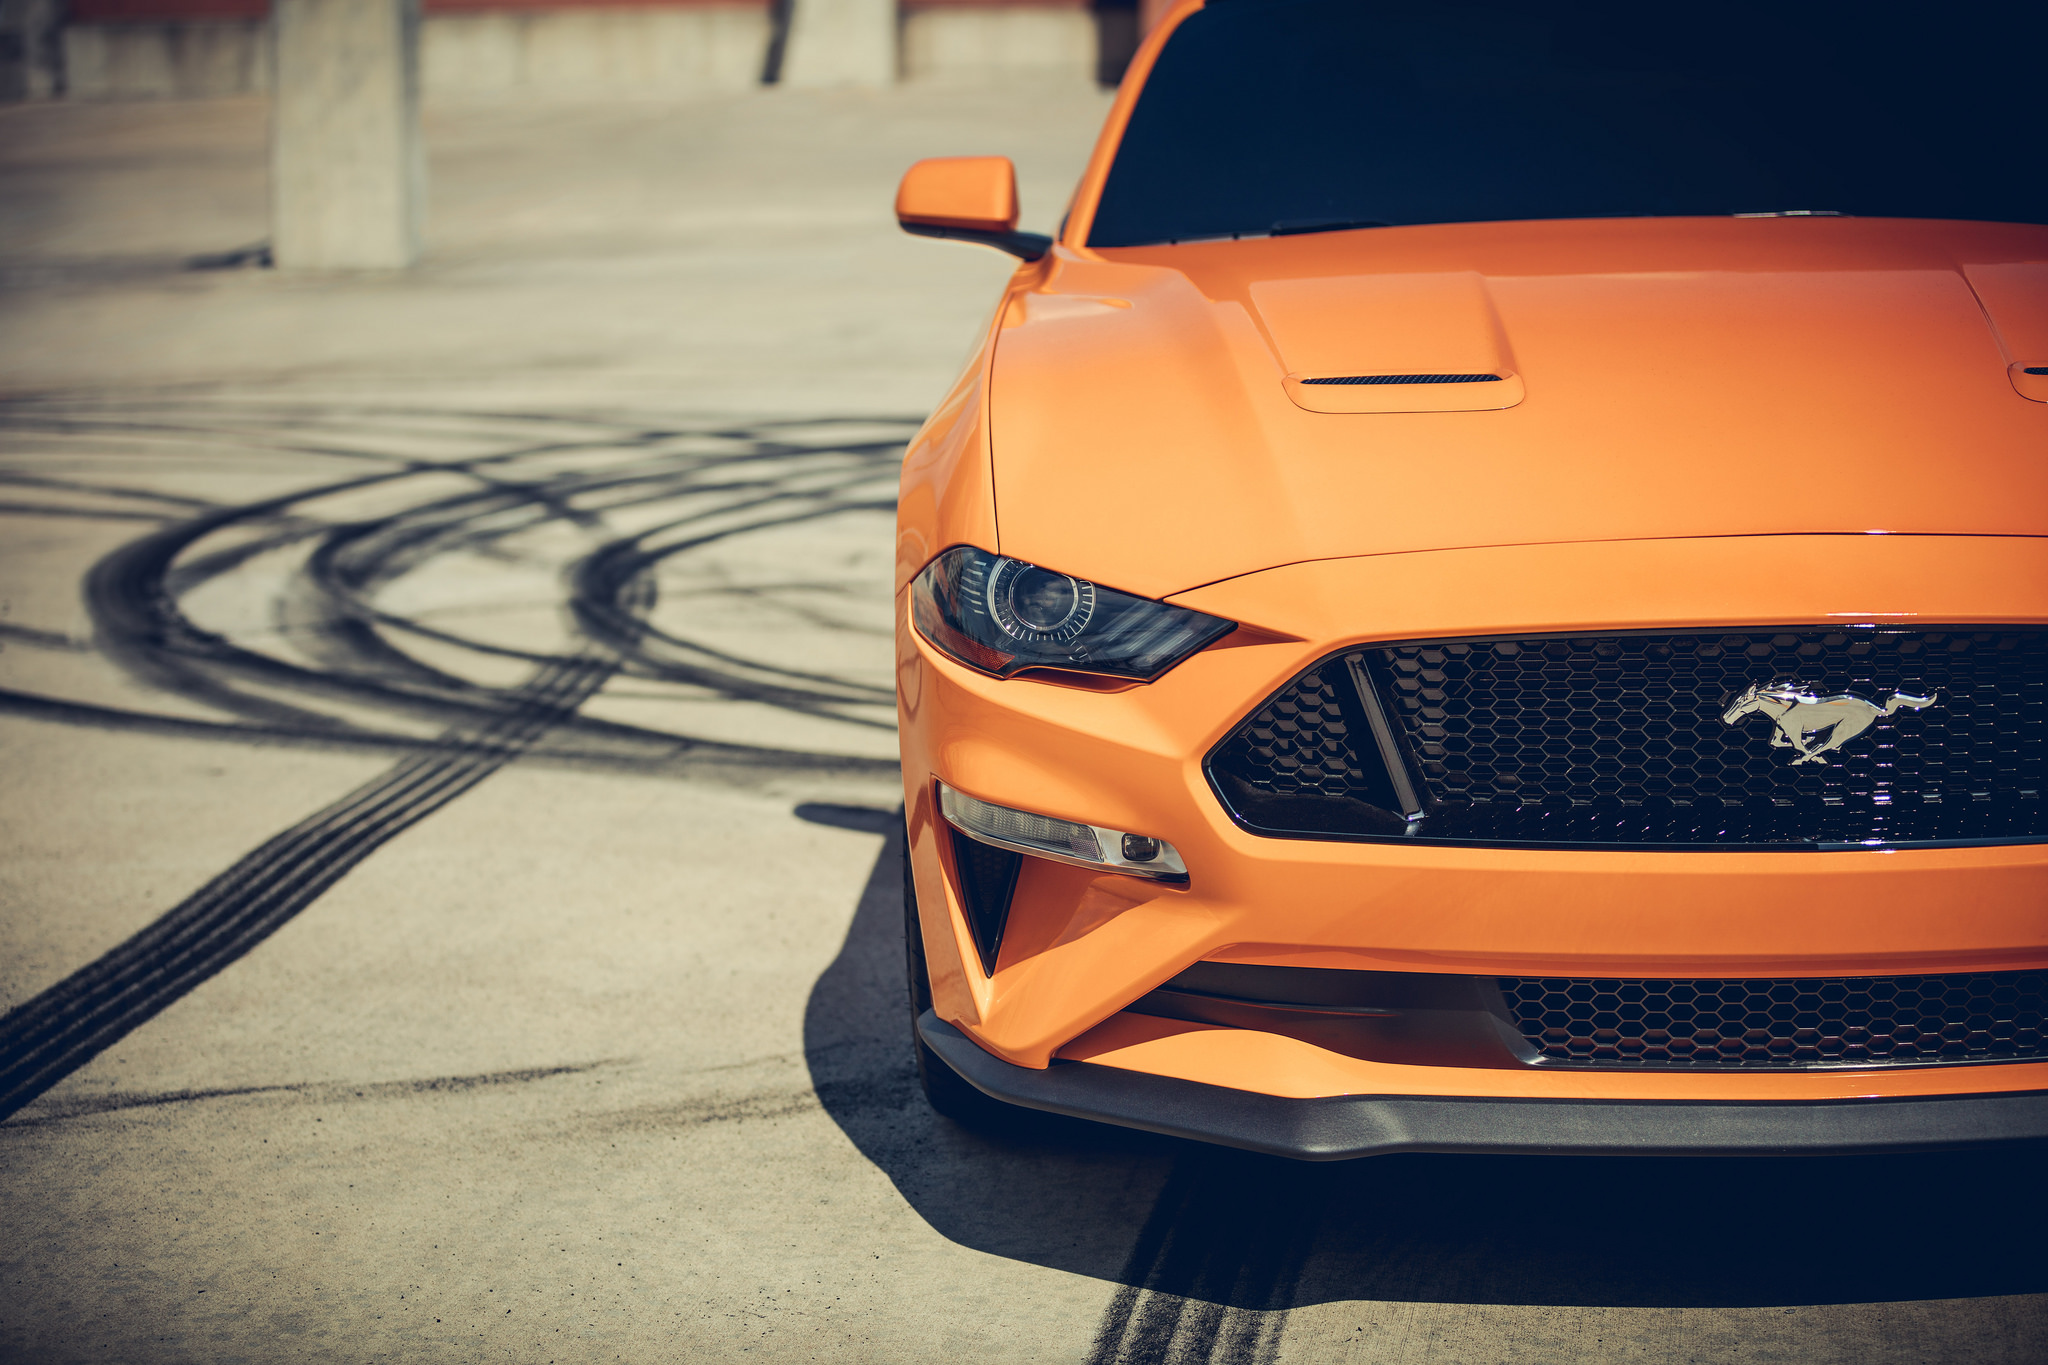 Personalize Your Pony with the Ford Mustang Facebook page, and share it with us at Sun State Ford